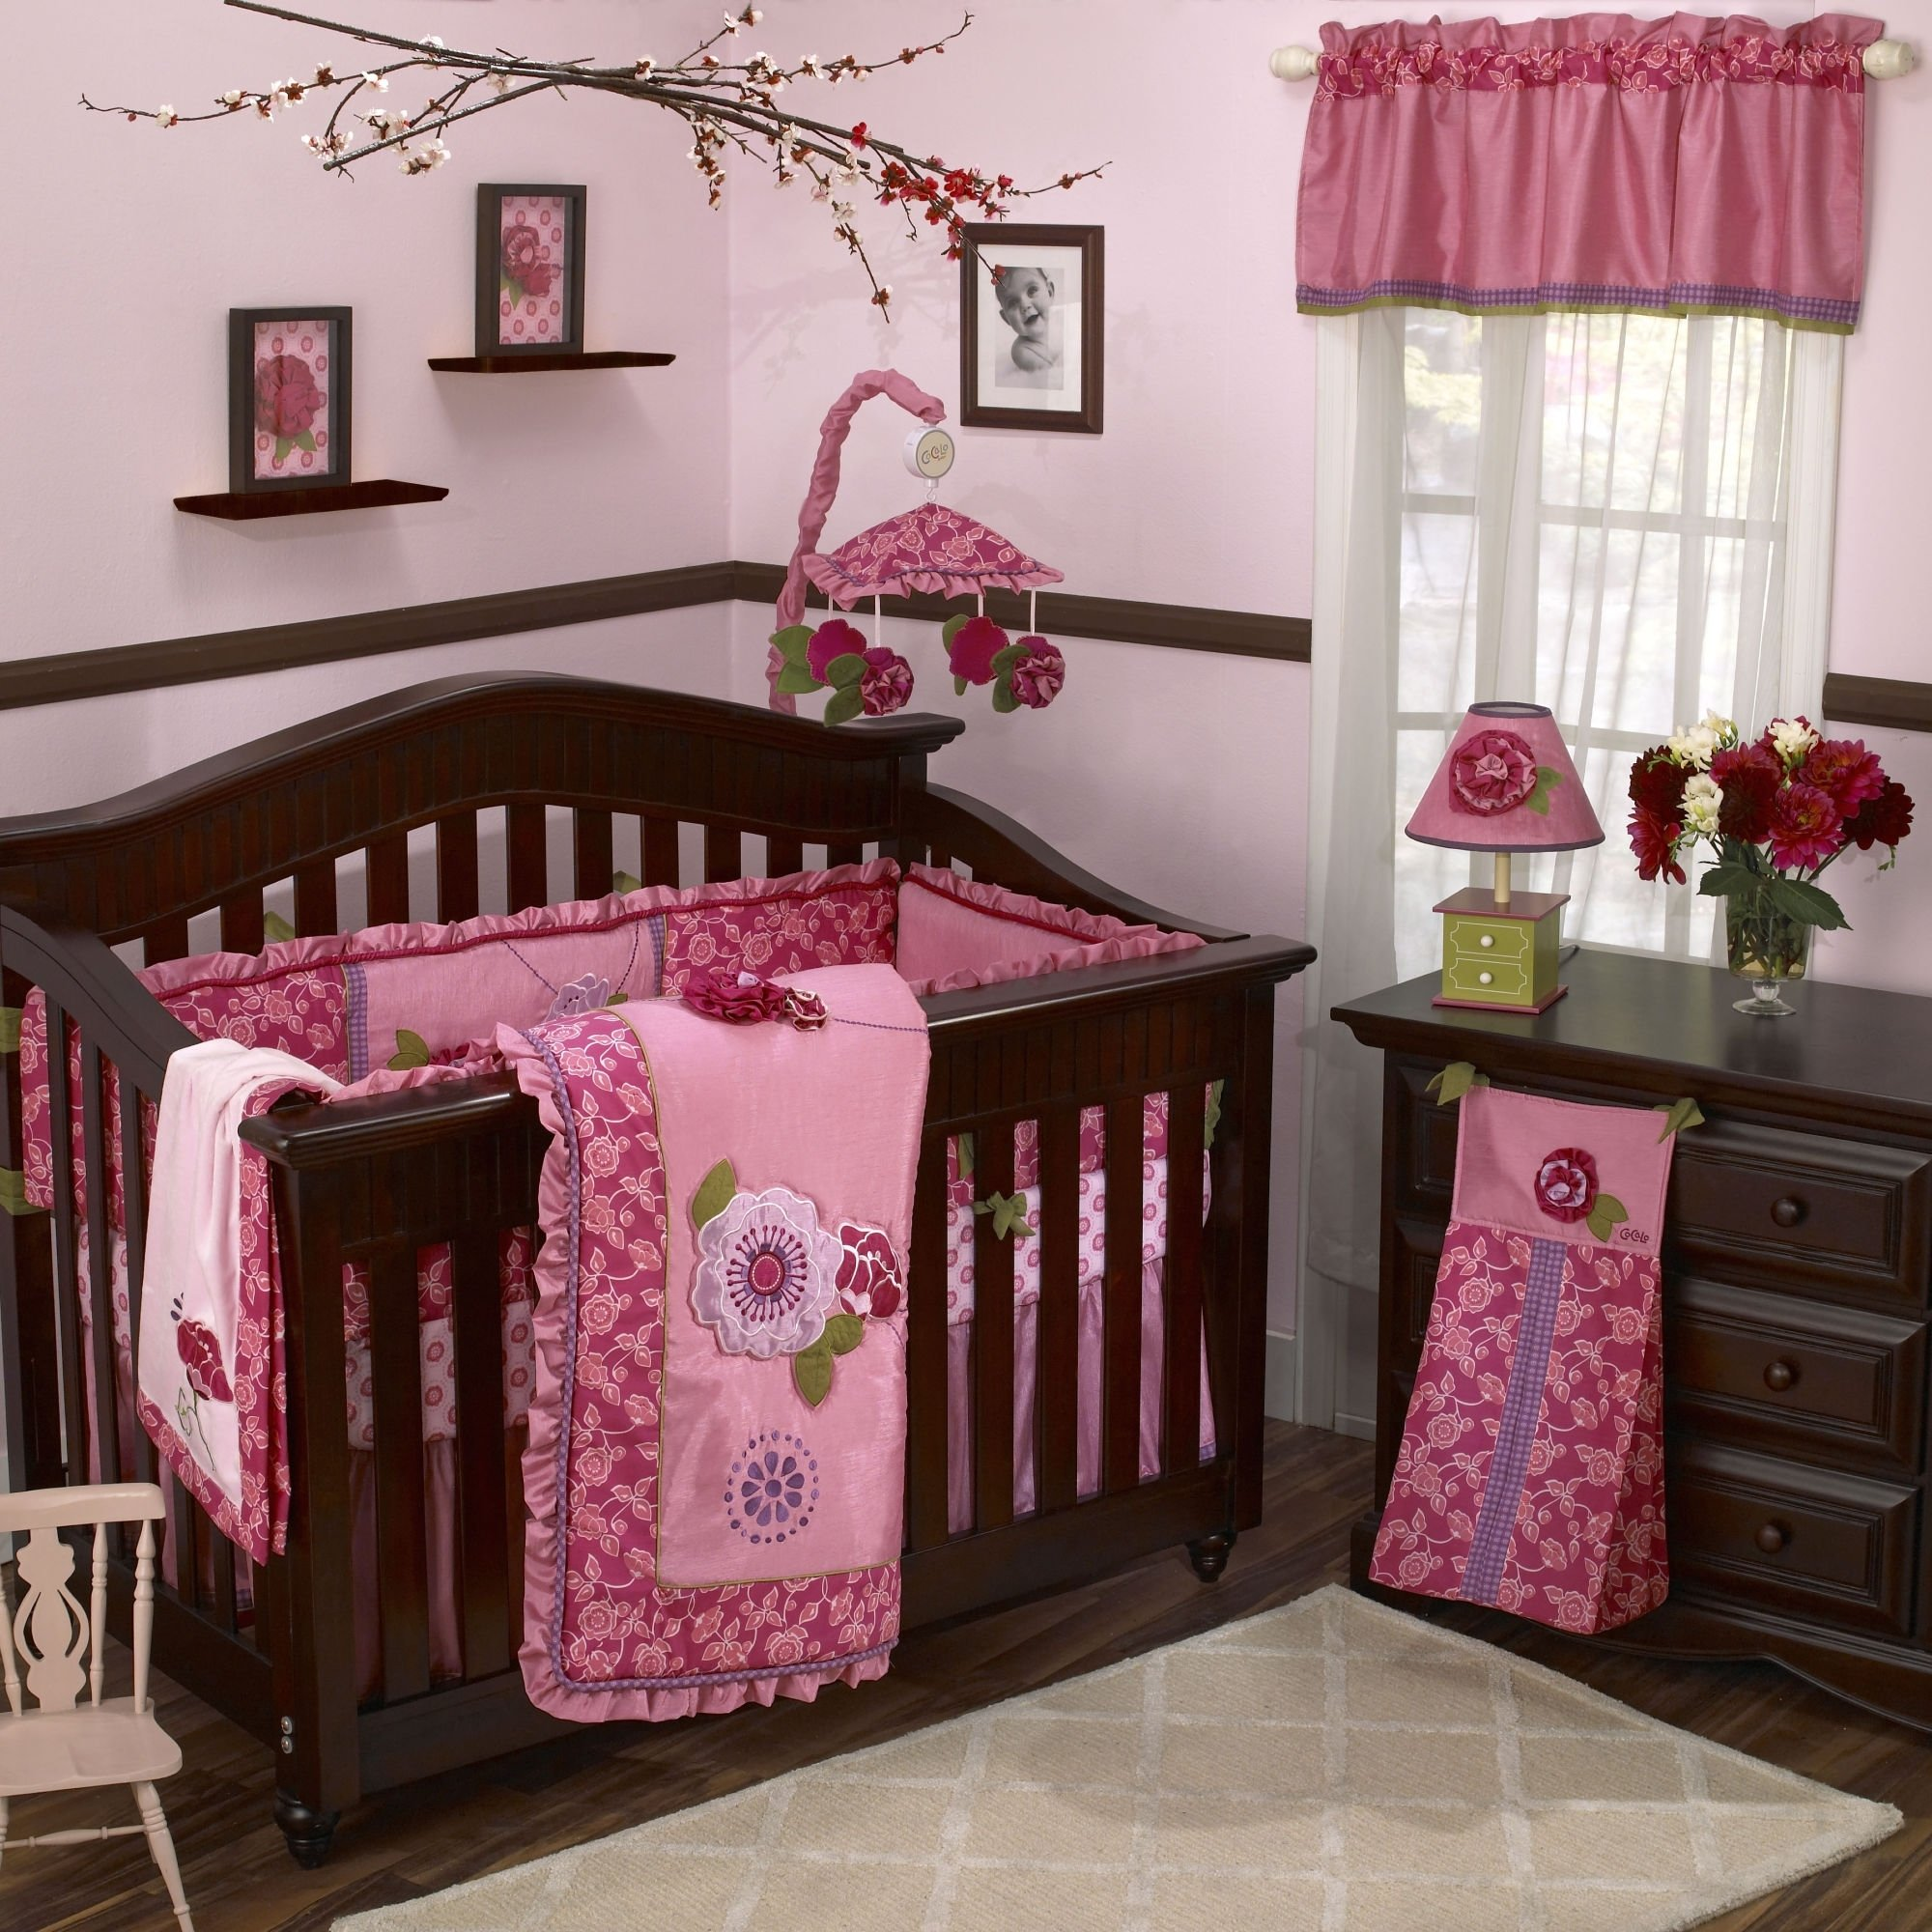 10 Nice Baby Room Ideas For Girls baby girl decorating room ideas interior4you 2021